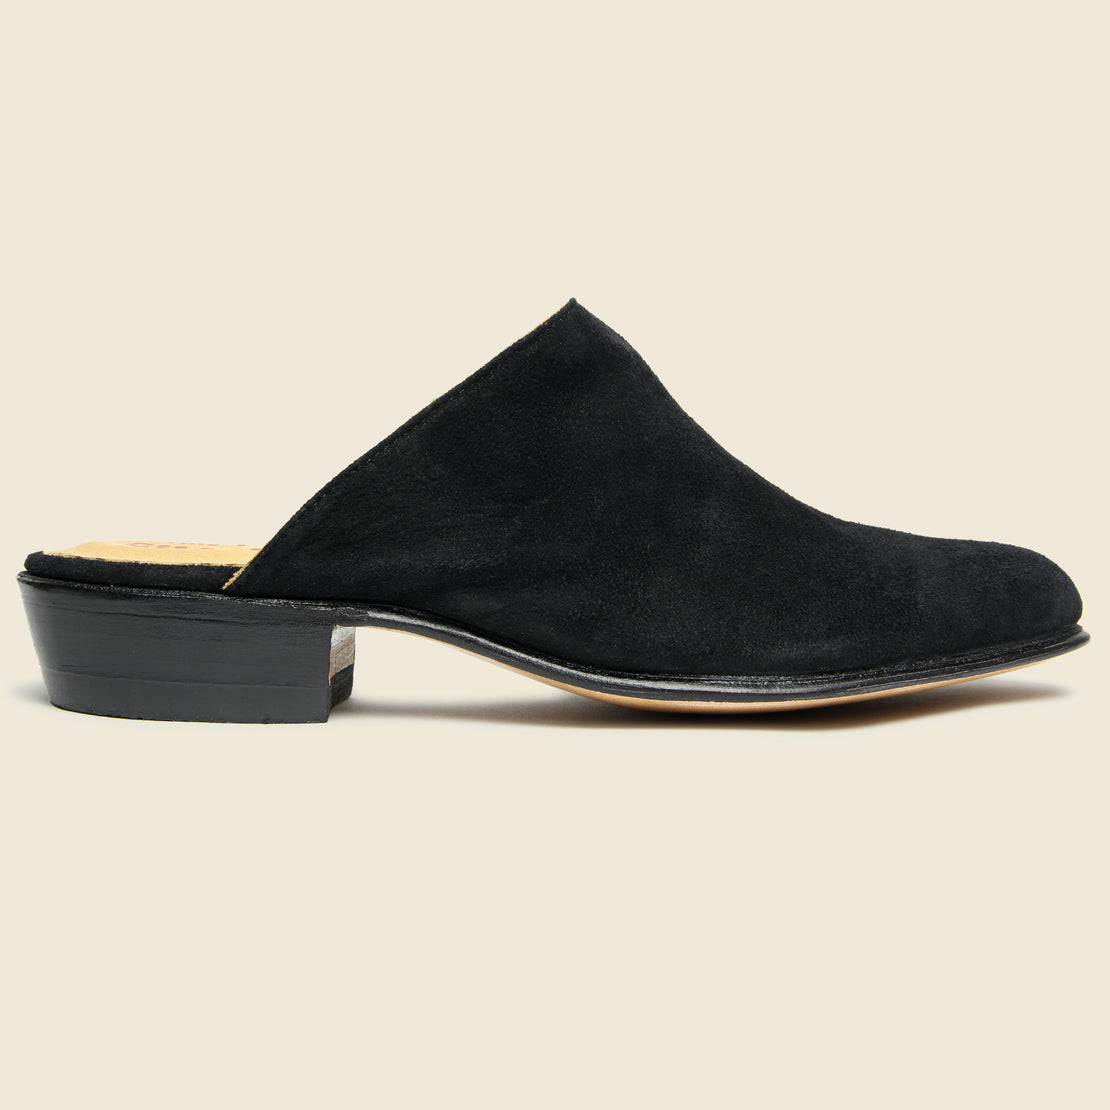 Chamula Sueco Slip On Mule - Black